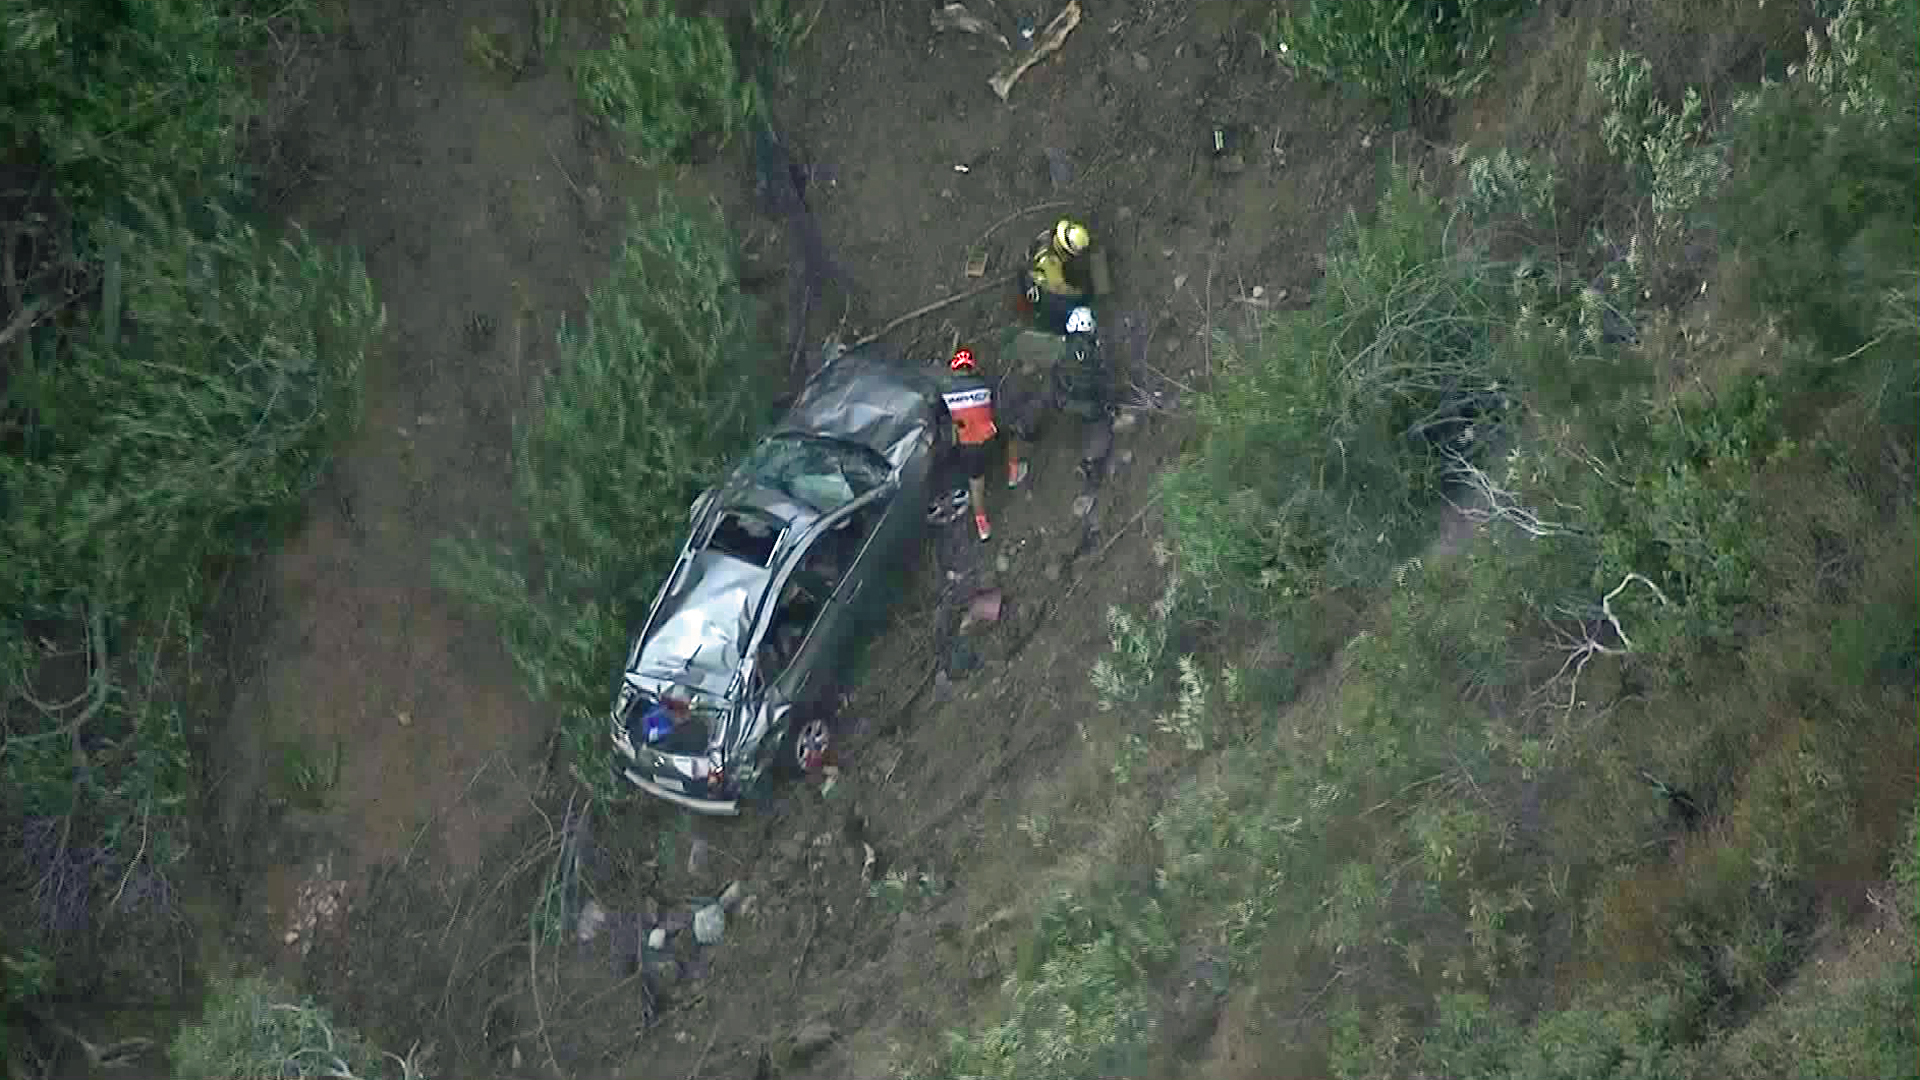 Rescuers respond to a car over the side of Glendora Mountain Road on Sept. 28, 2017. (Credit: KTLA)